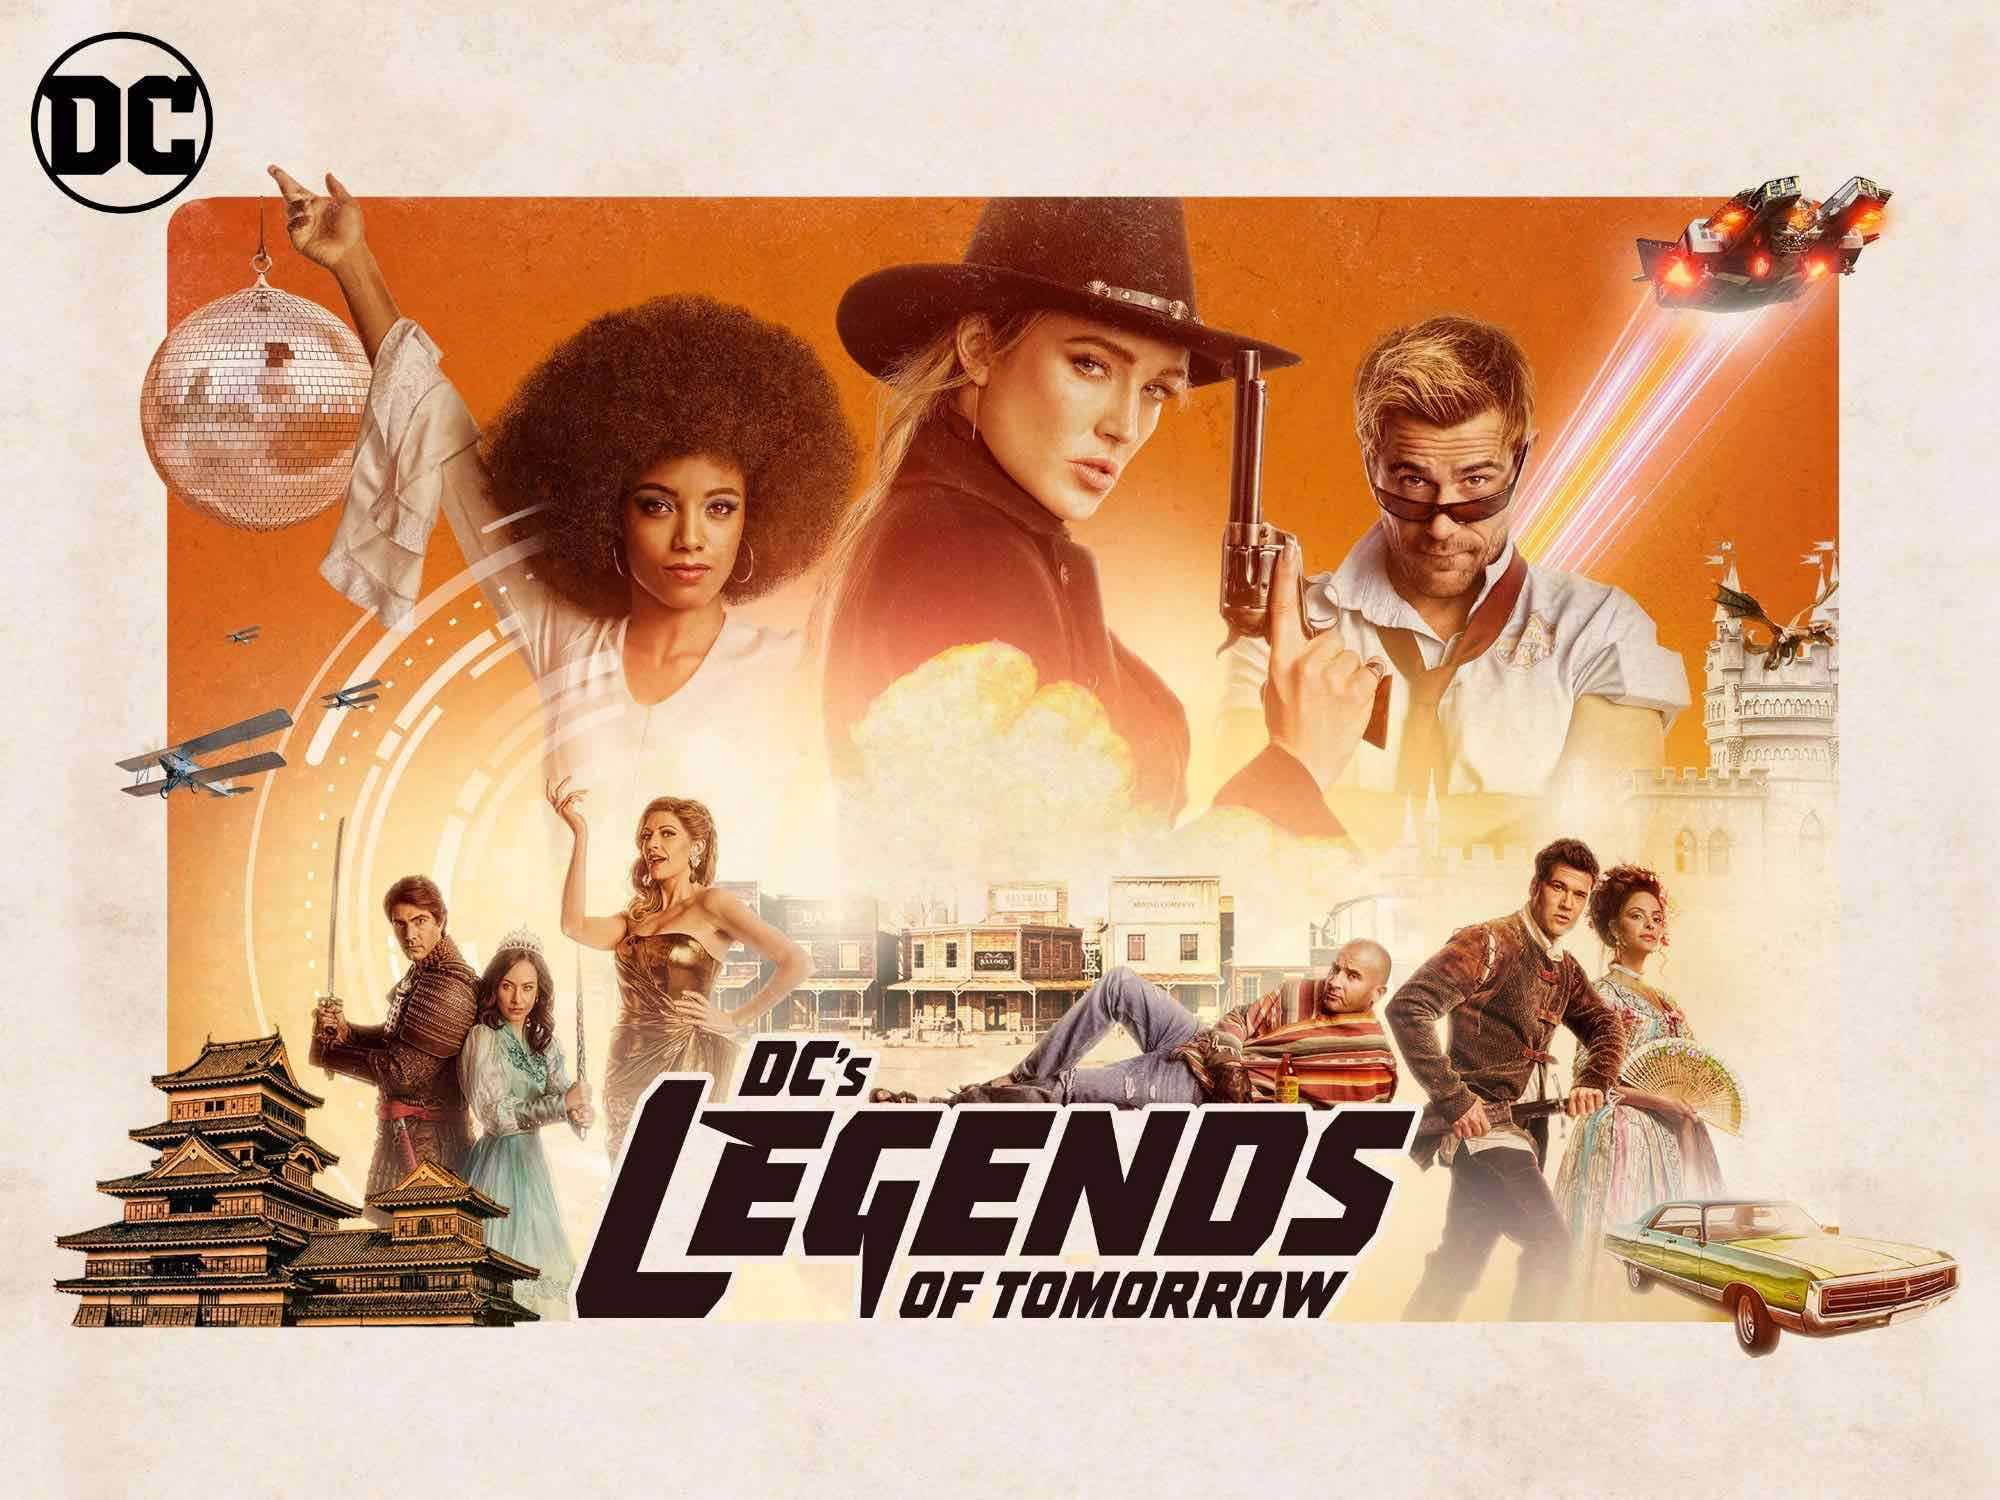 """'Legends of Tomorrow' season 5 began on the heels of the """"Crisis on Infinite Earths"""" mega-crossover event. Here's our recap."""